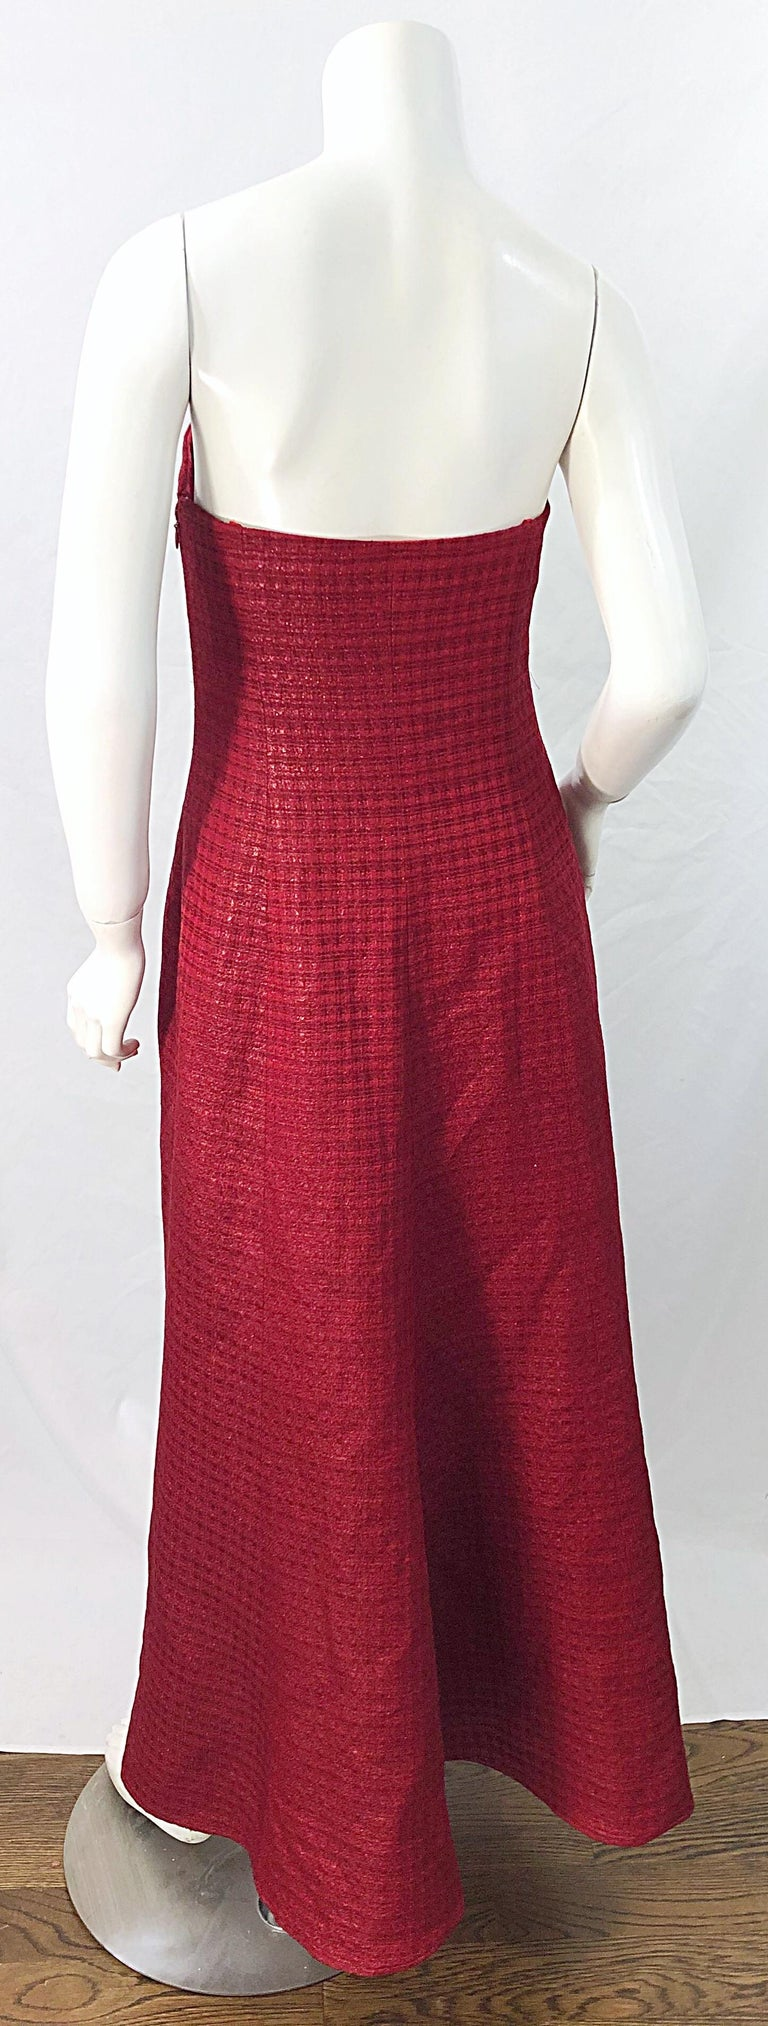 1990s Louis Feraud Cranberry Red Strapless Vintage 90s Silk + Wool Gown Dress For Sale 4